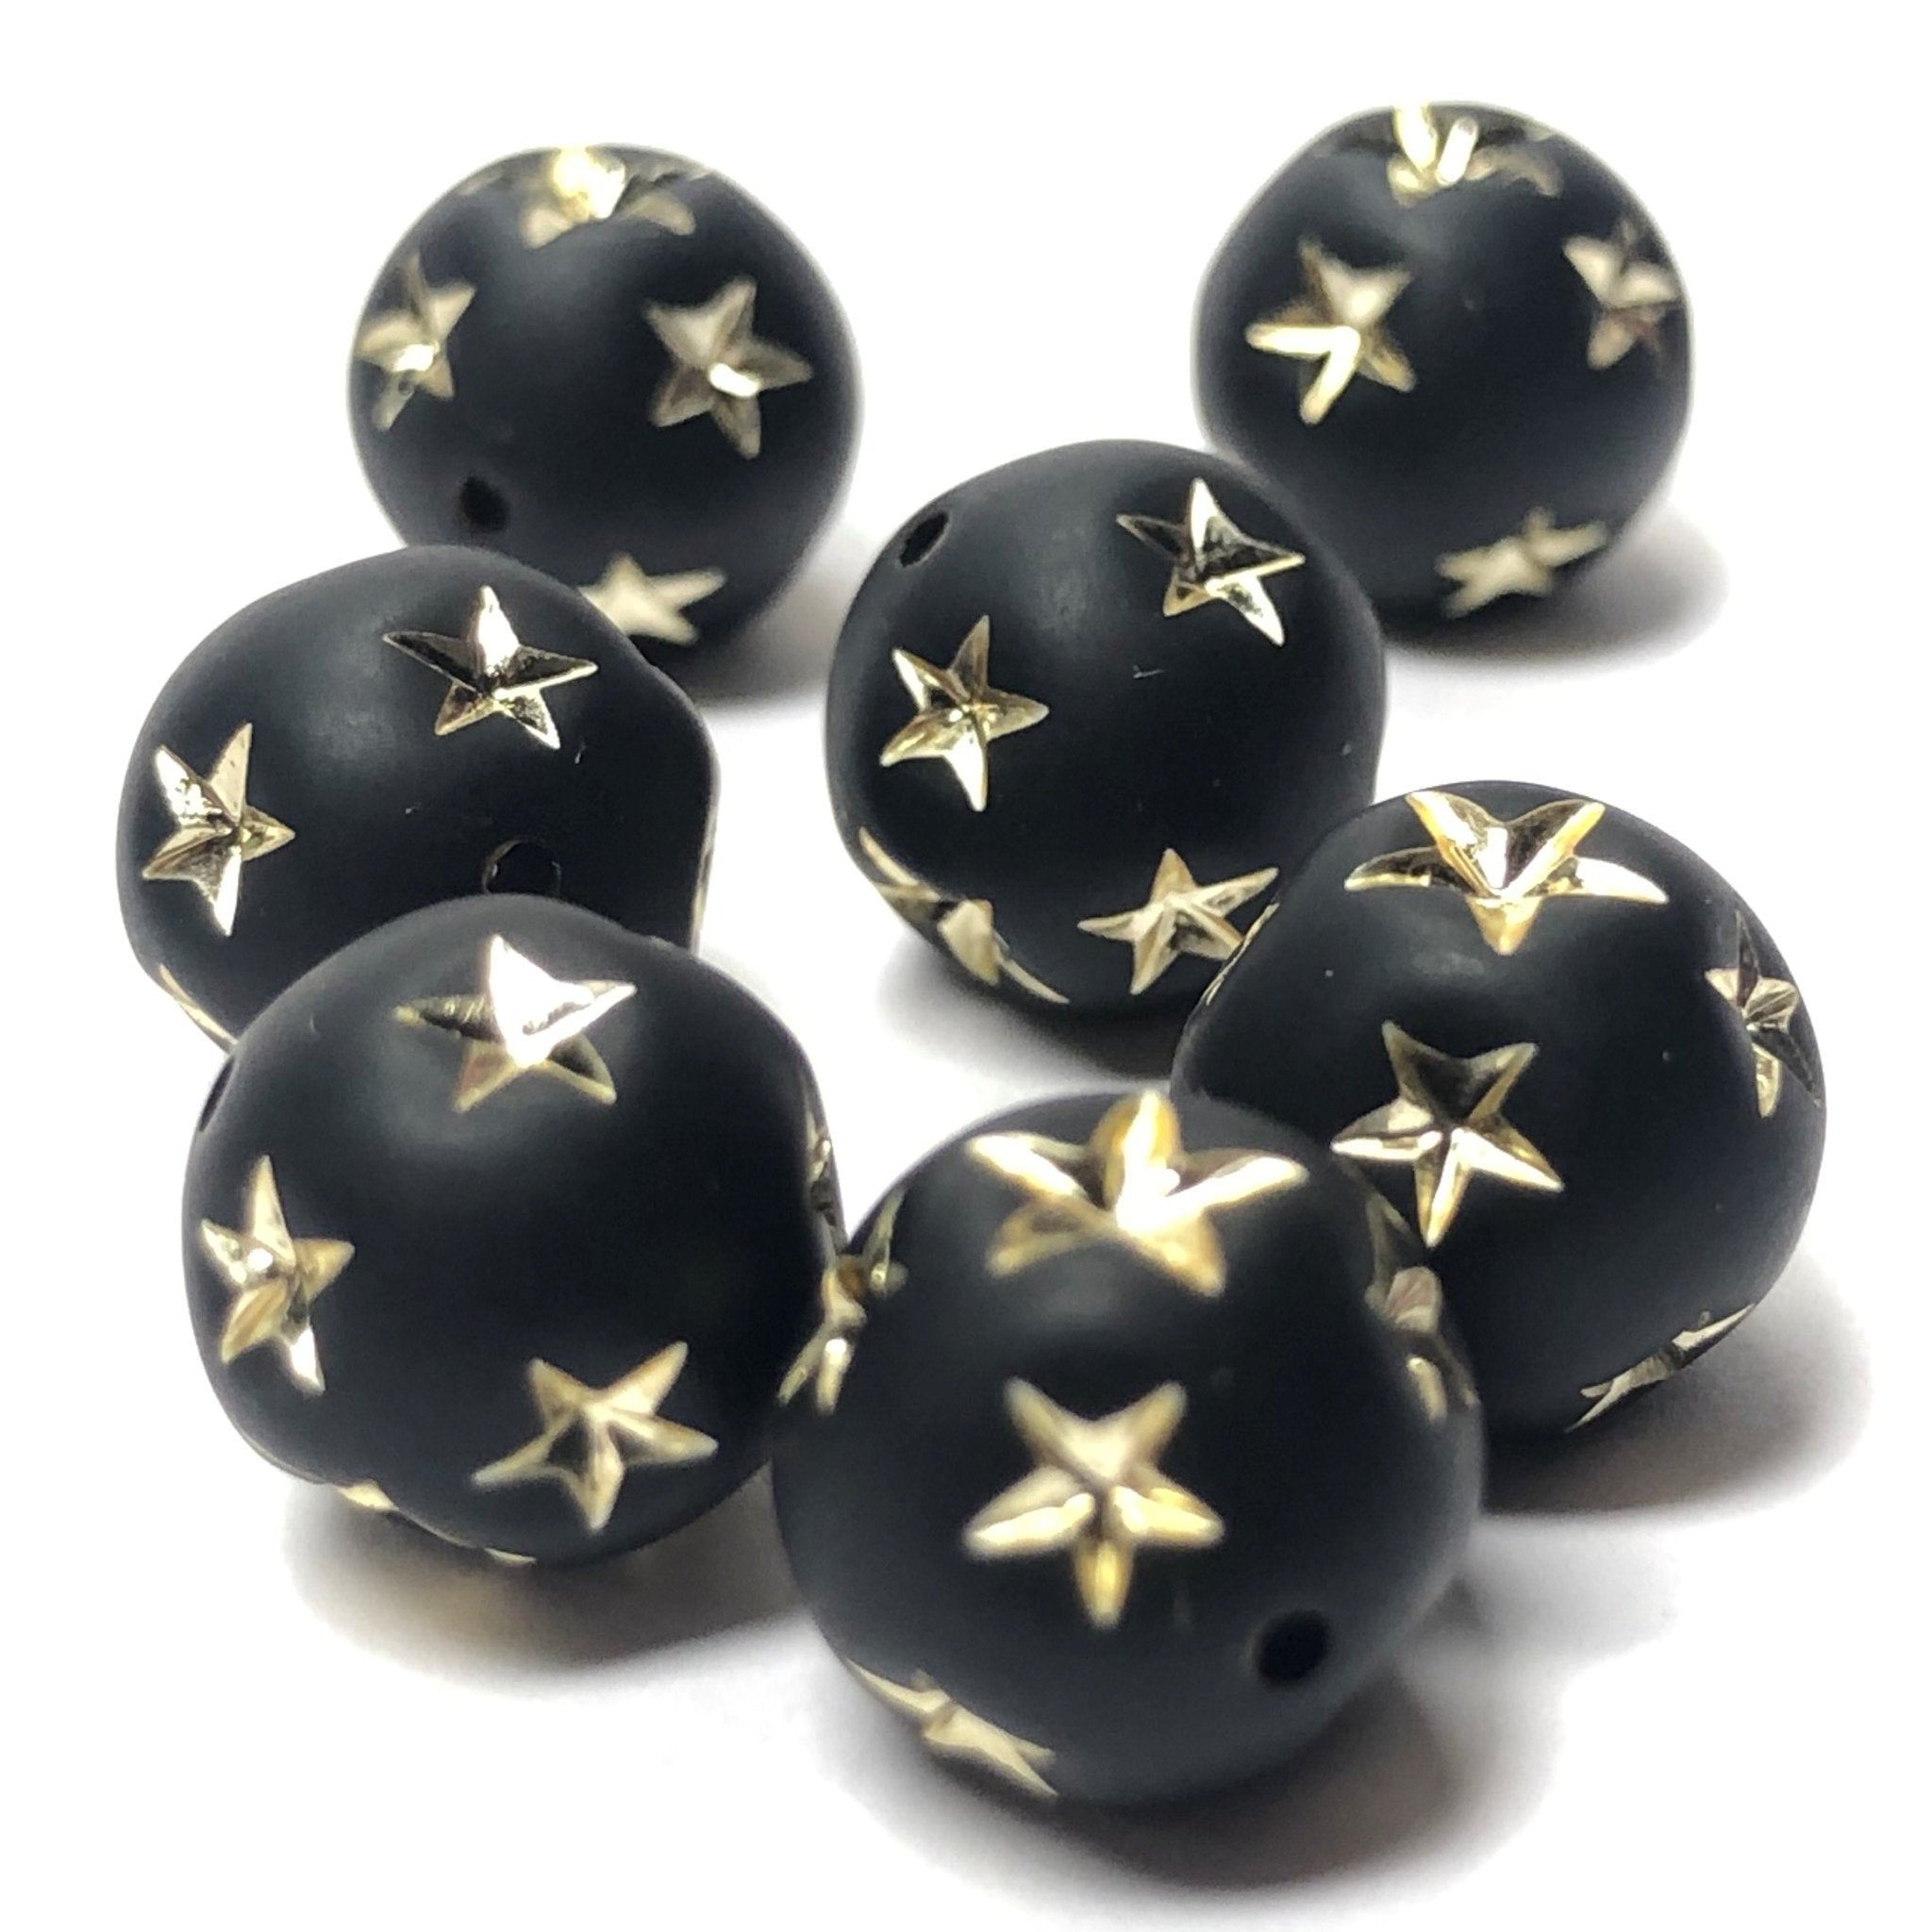 8MM Black Mat-Gold Star Acrylic Bead (36 pieces)